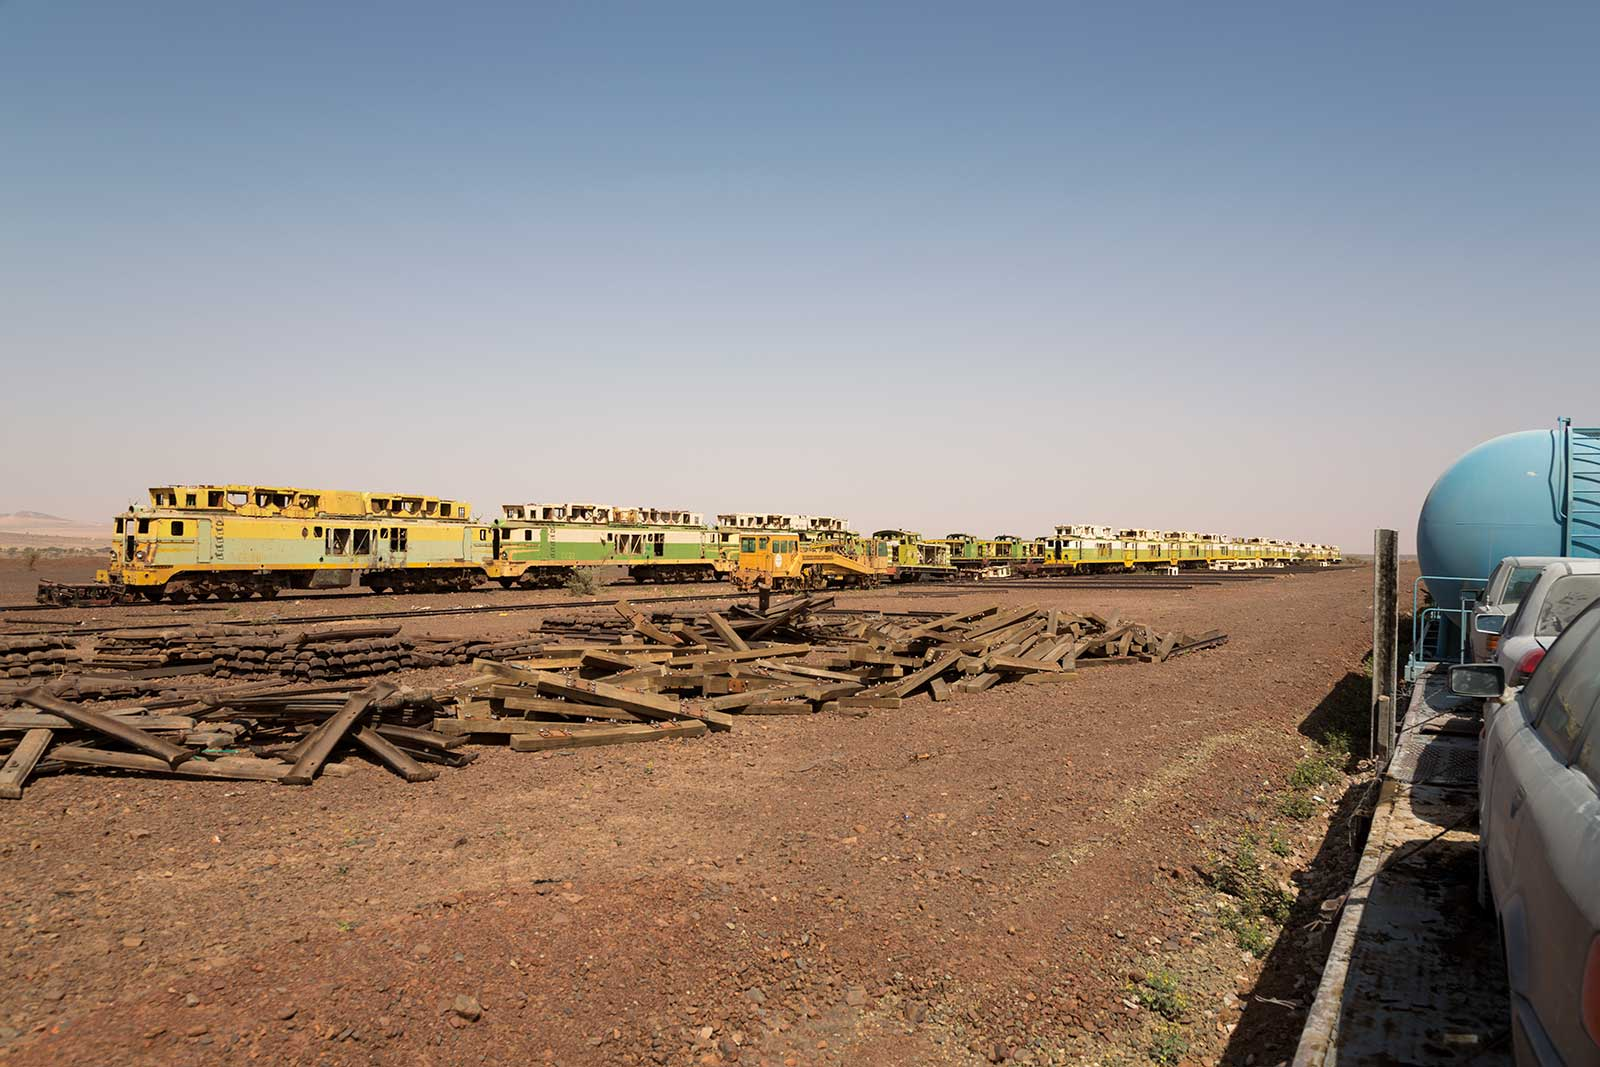 While the Iron Ore Train snakes its way through Mauritania, you'll come across wrecks from all sorts of vehicles - here, old Diesel locomotives that were once in use have been parked.